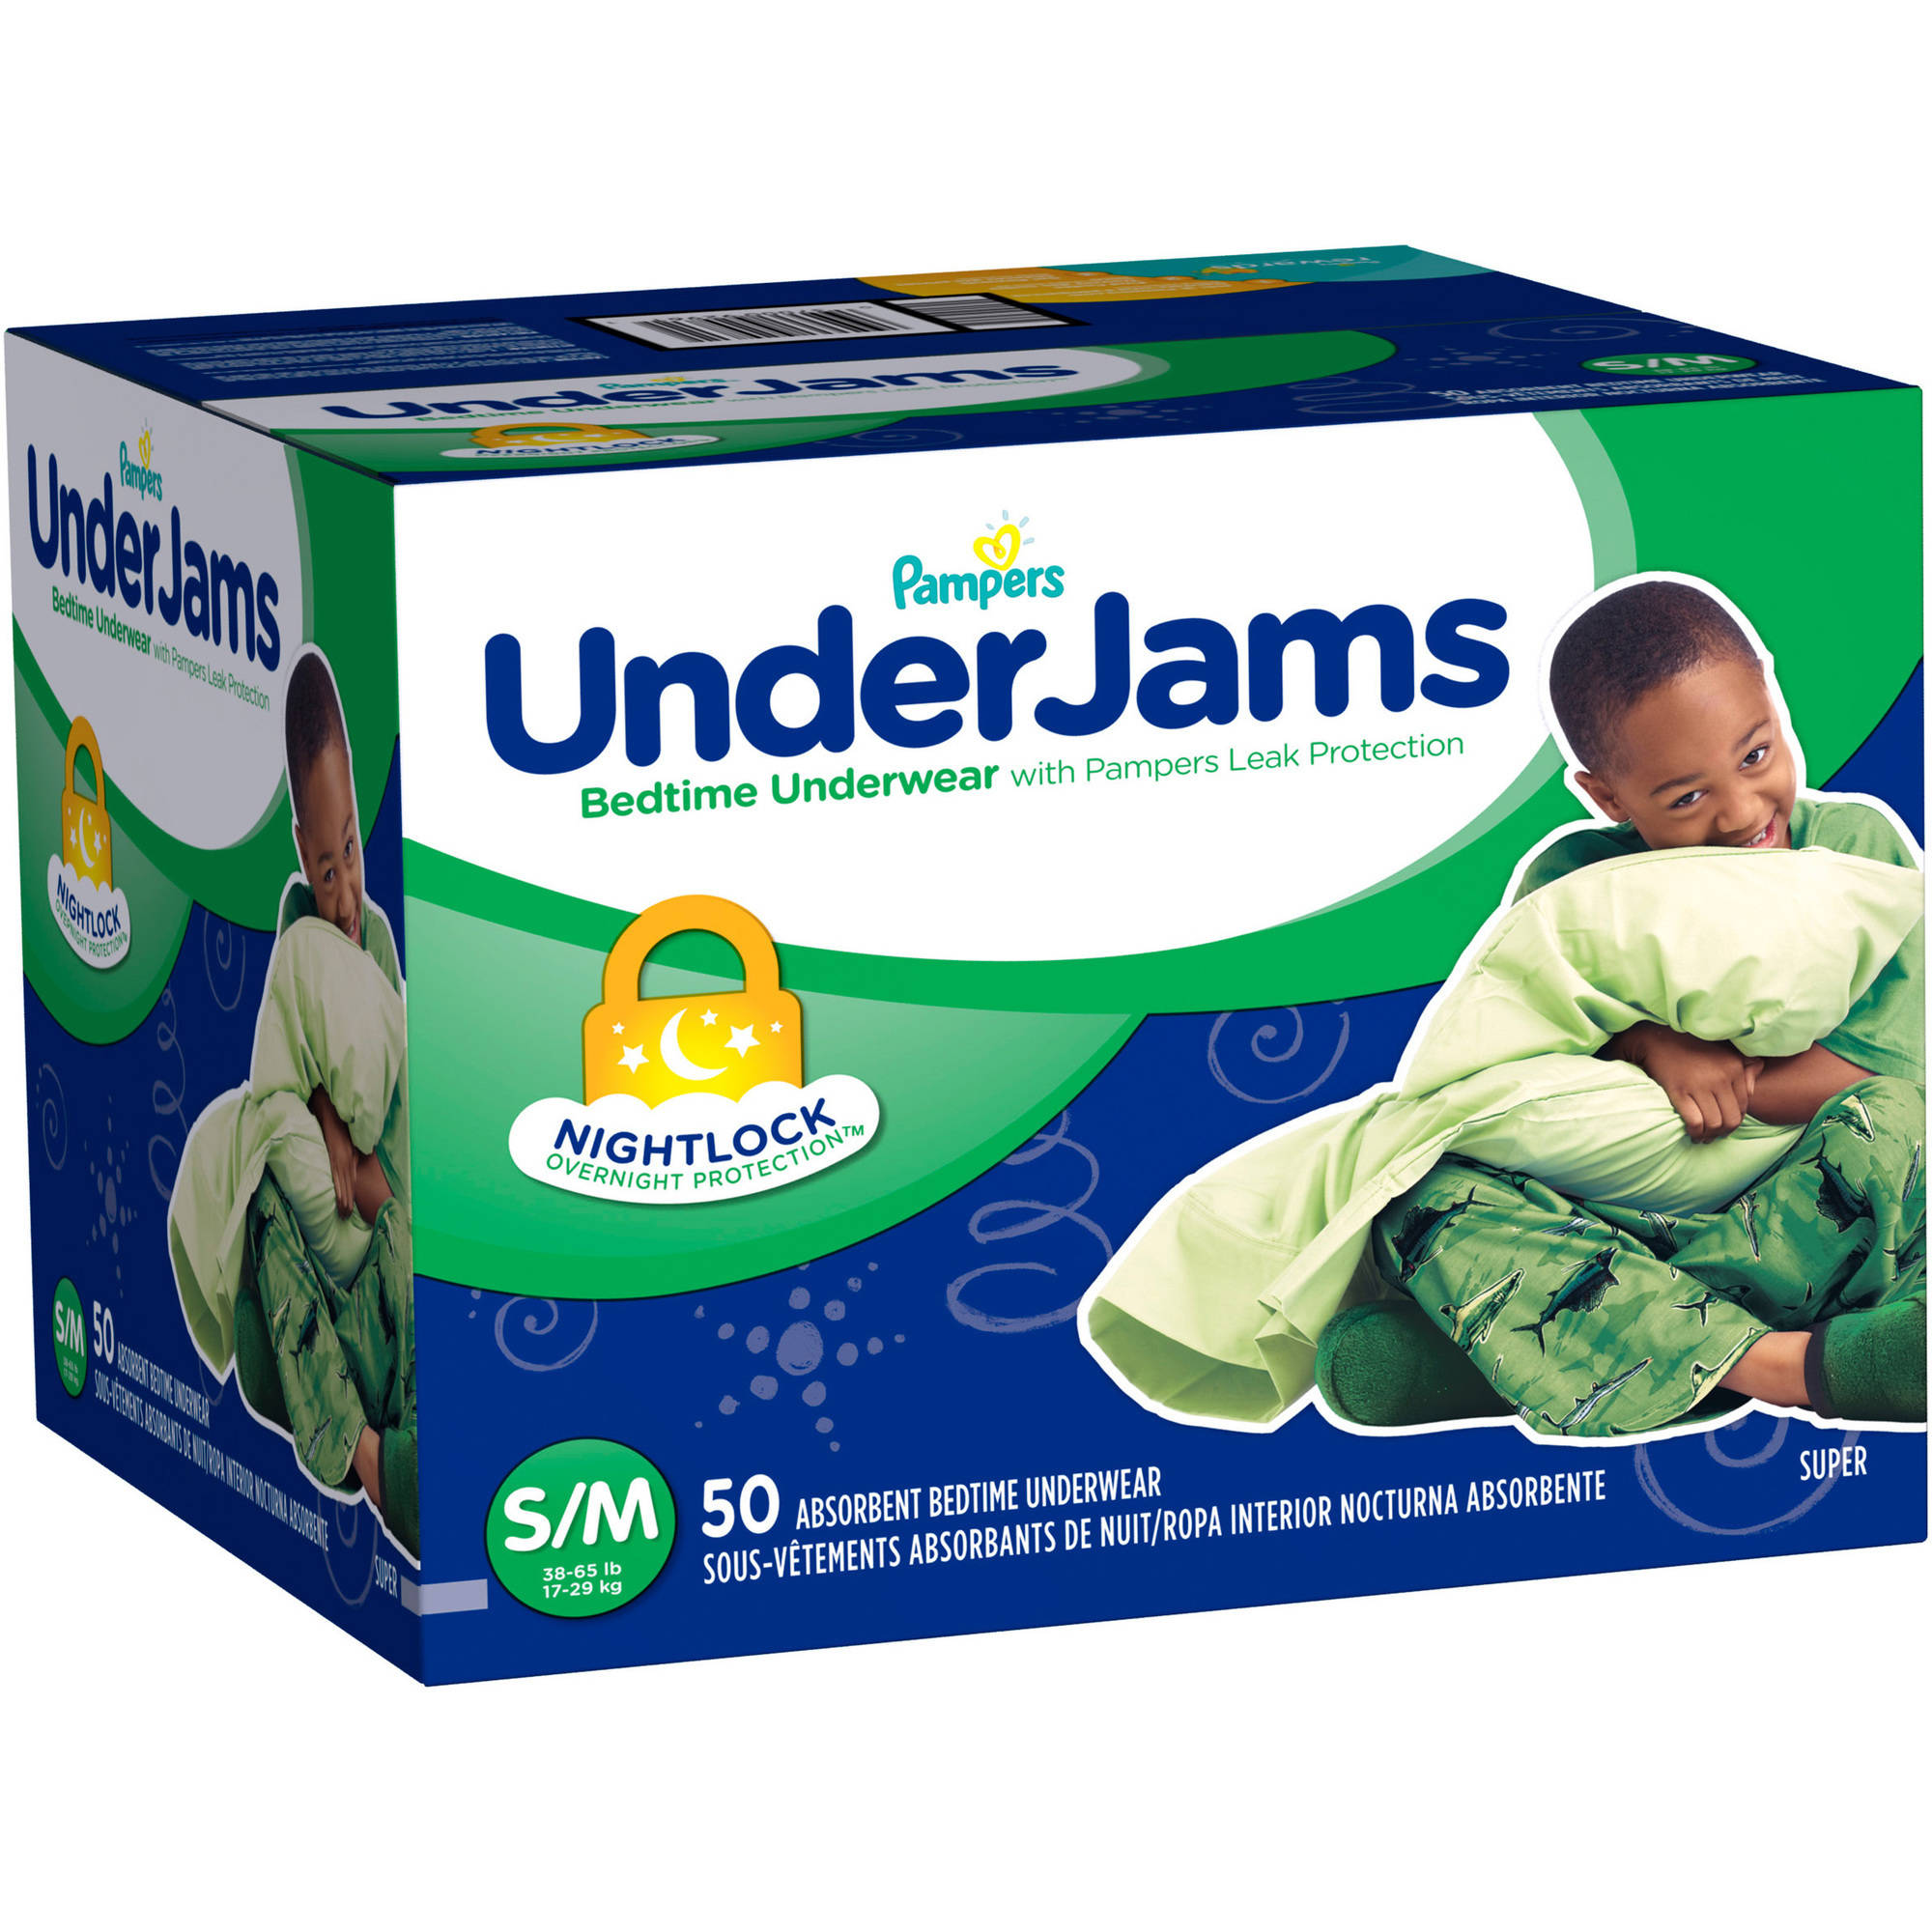 Pampers UnderJams Boys' Bedtime Underwear, Size S/M (Choose Pant Count)